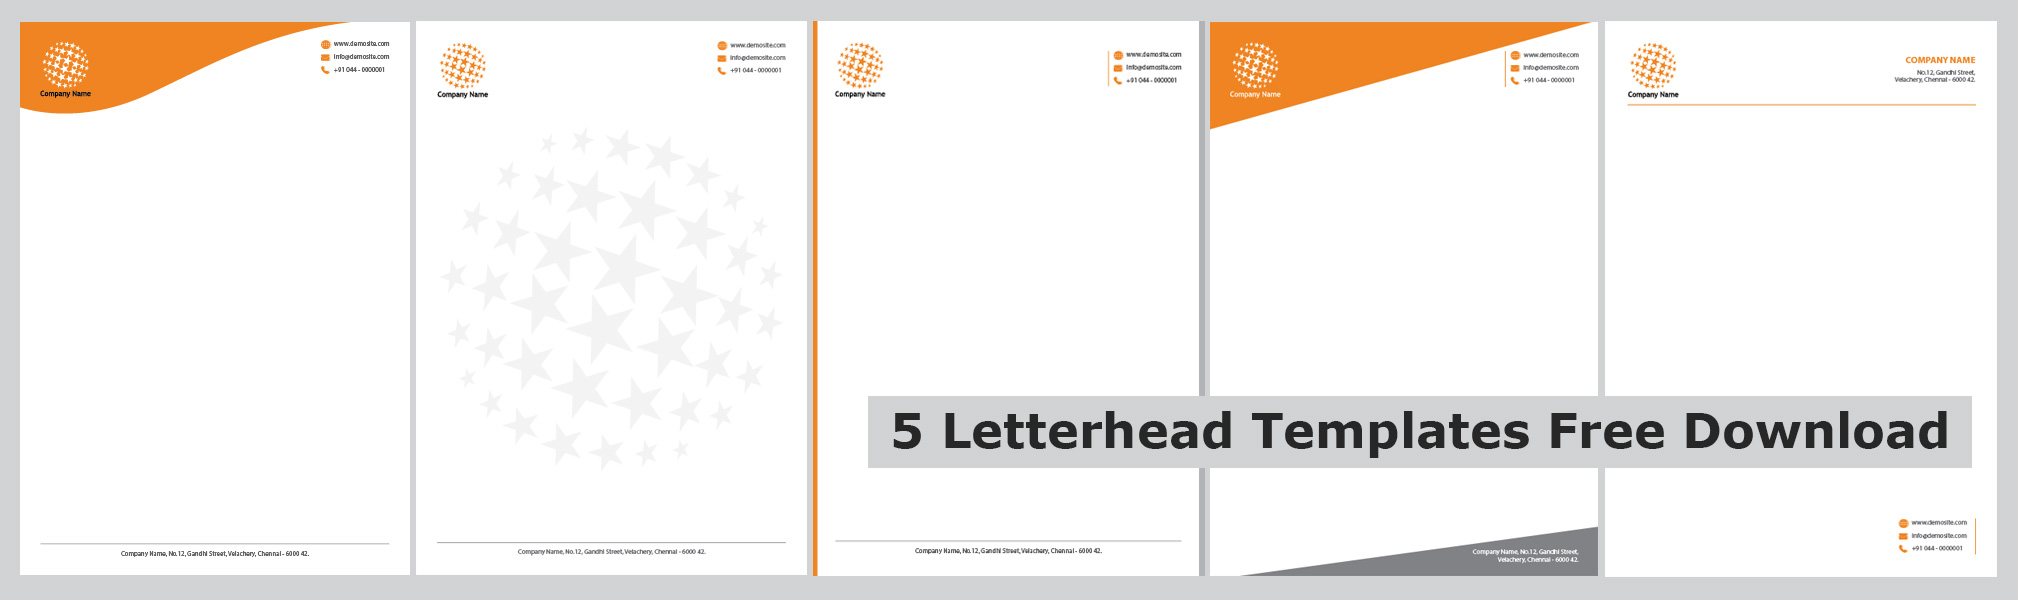 How to design a company letterhead for free – Company Letterhead Samples Free Download